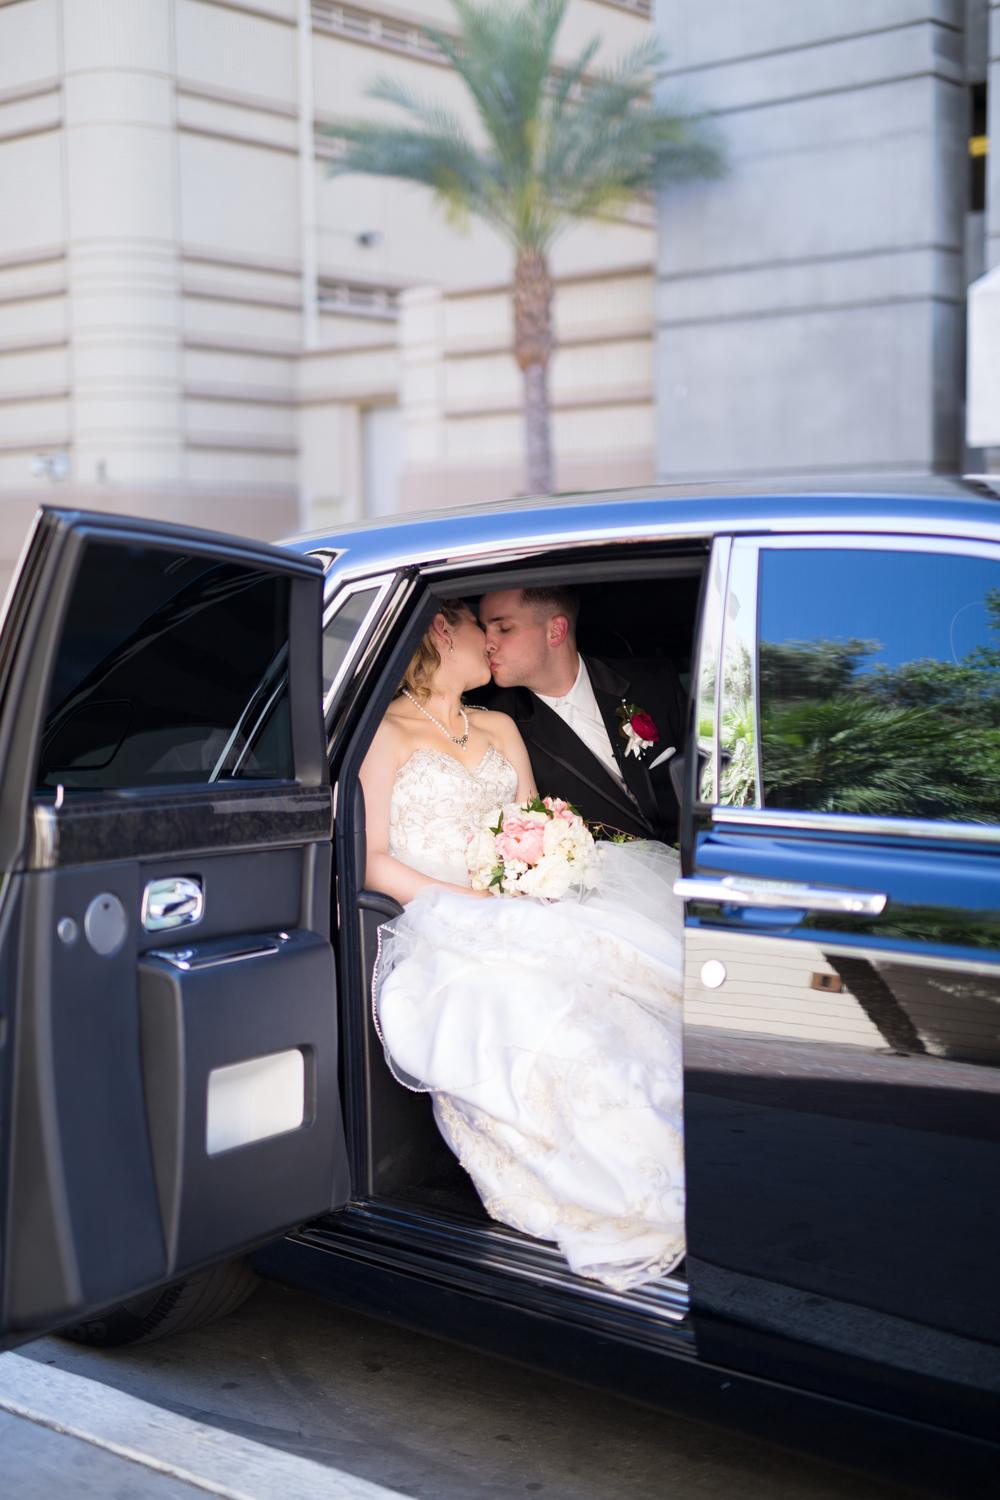 Bride and groom kissing in a rolls royce on their wedding day.  Las Vegas Wedding Planner Andrea Eppolito  |  Wedding at The Venetian Las Vegas  |  Florals and Decor by Naakiti Floral  |  Photos by Meg Ruth